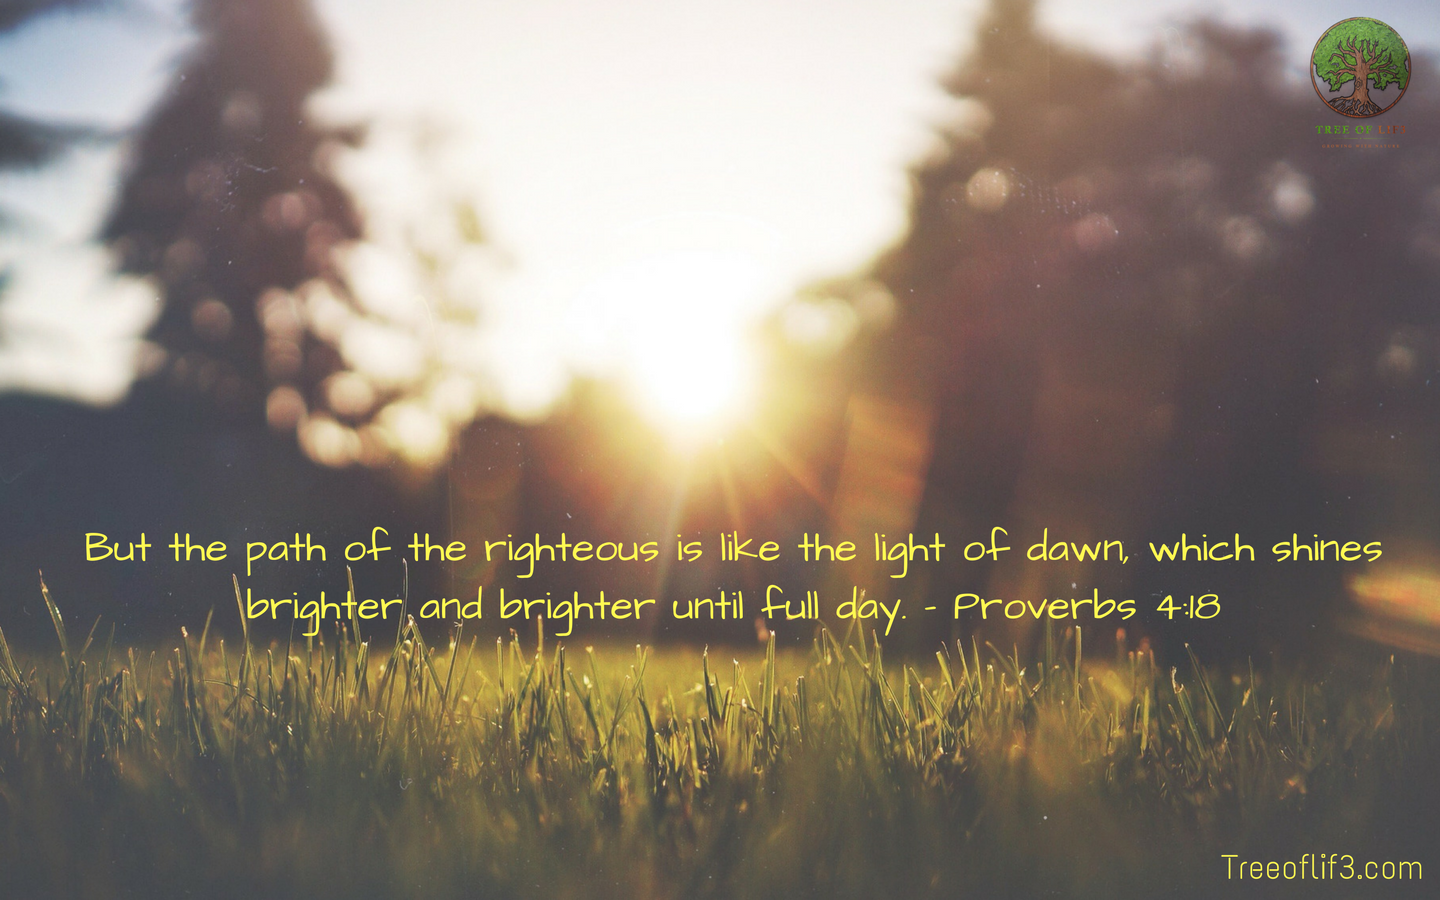 But the path of the righteous is like the light of dawn, which shines brighter and brighter until full day - Proverbs 4:18